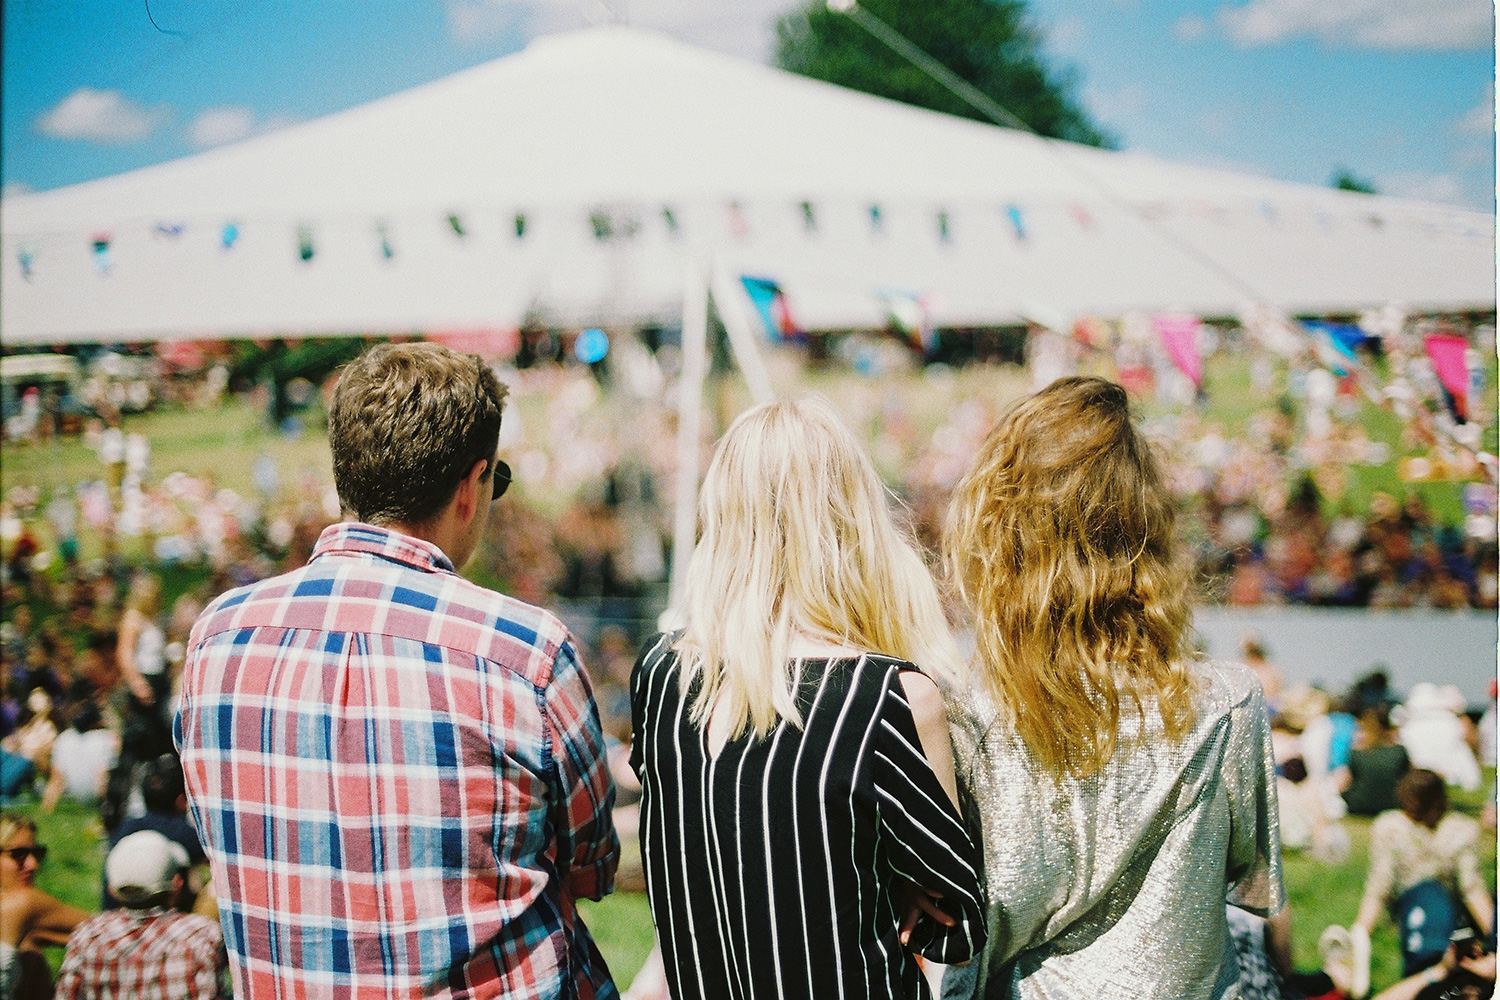 festivals - Organising or looking for an enchanted setting for your festival? We can cater for up to 200 people on site and with plenty of room and areas to play with, it won't disappoint.